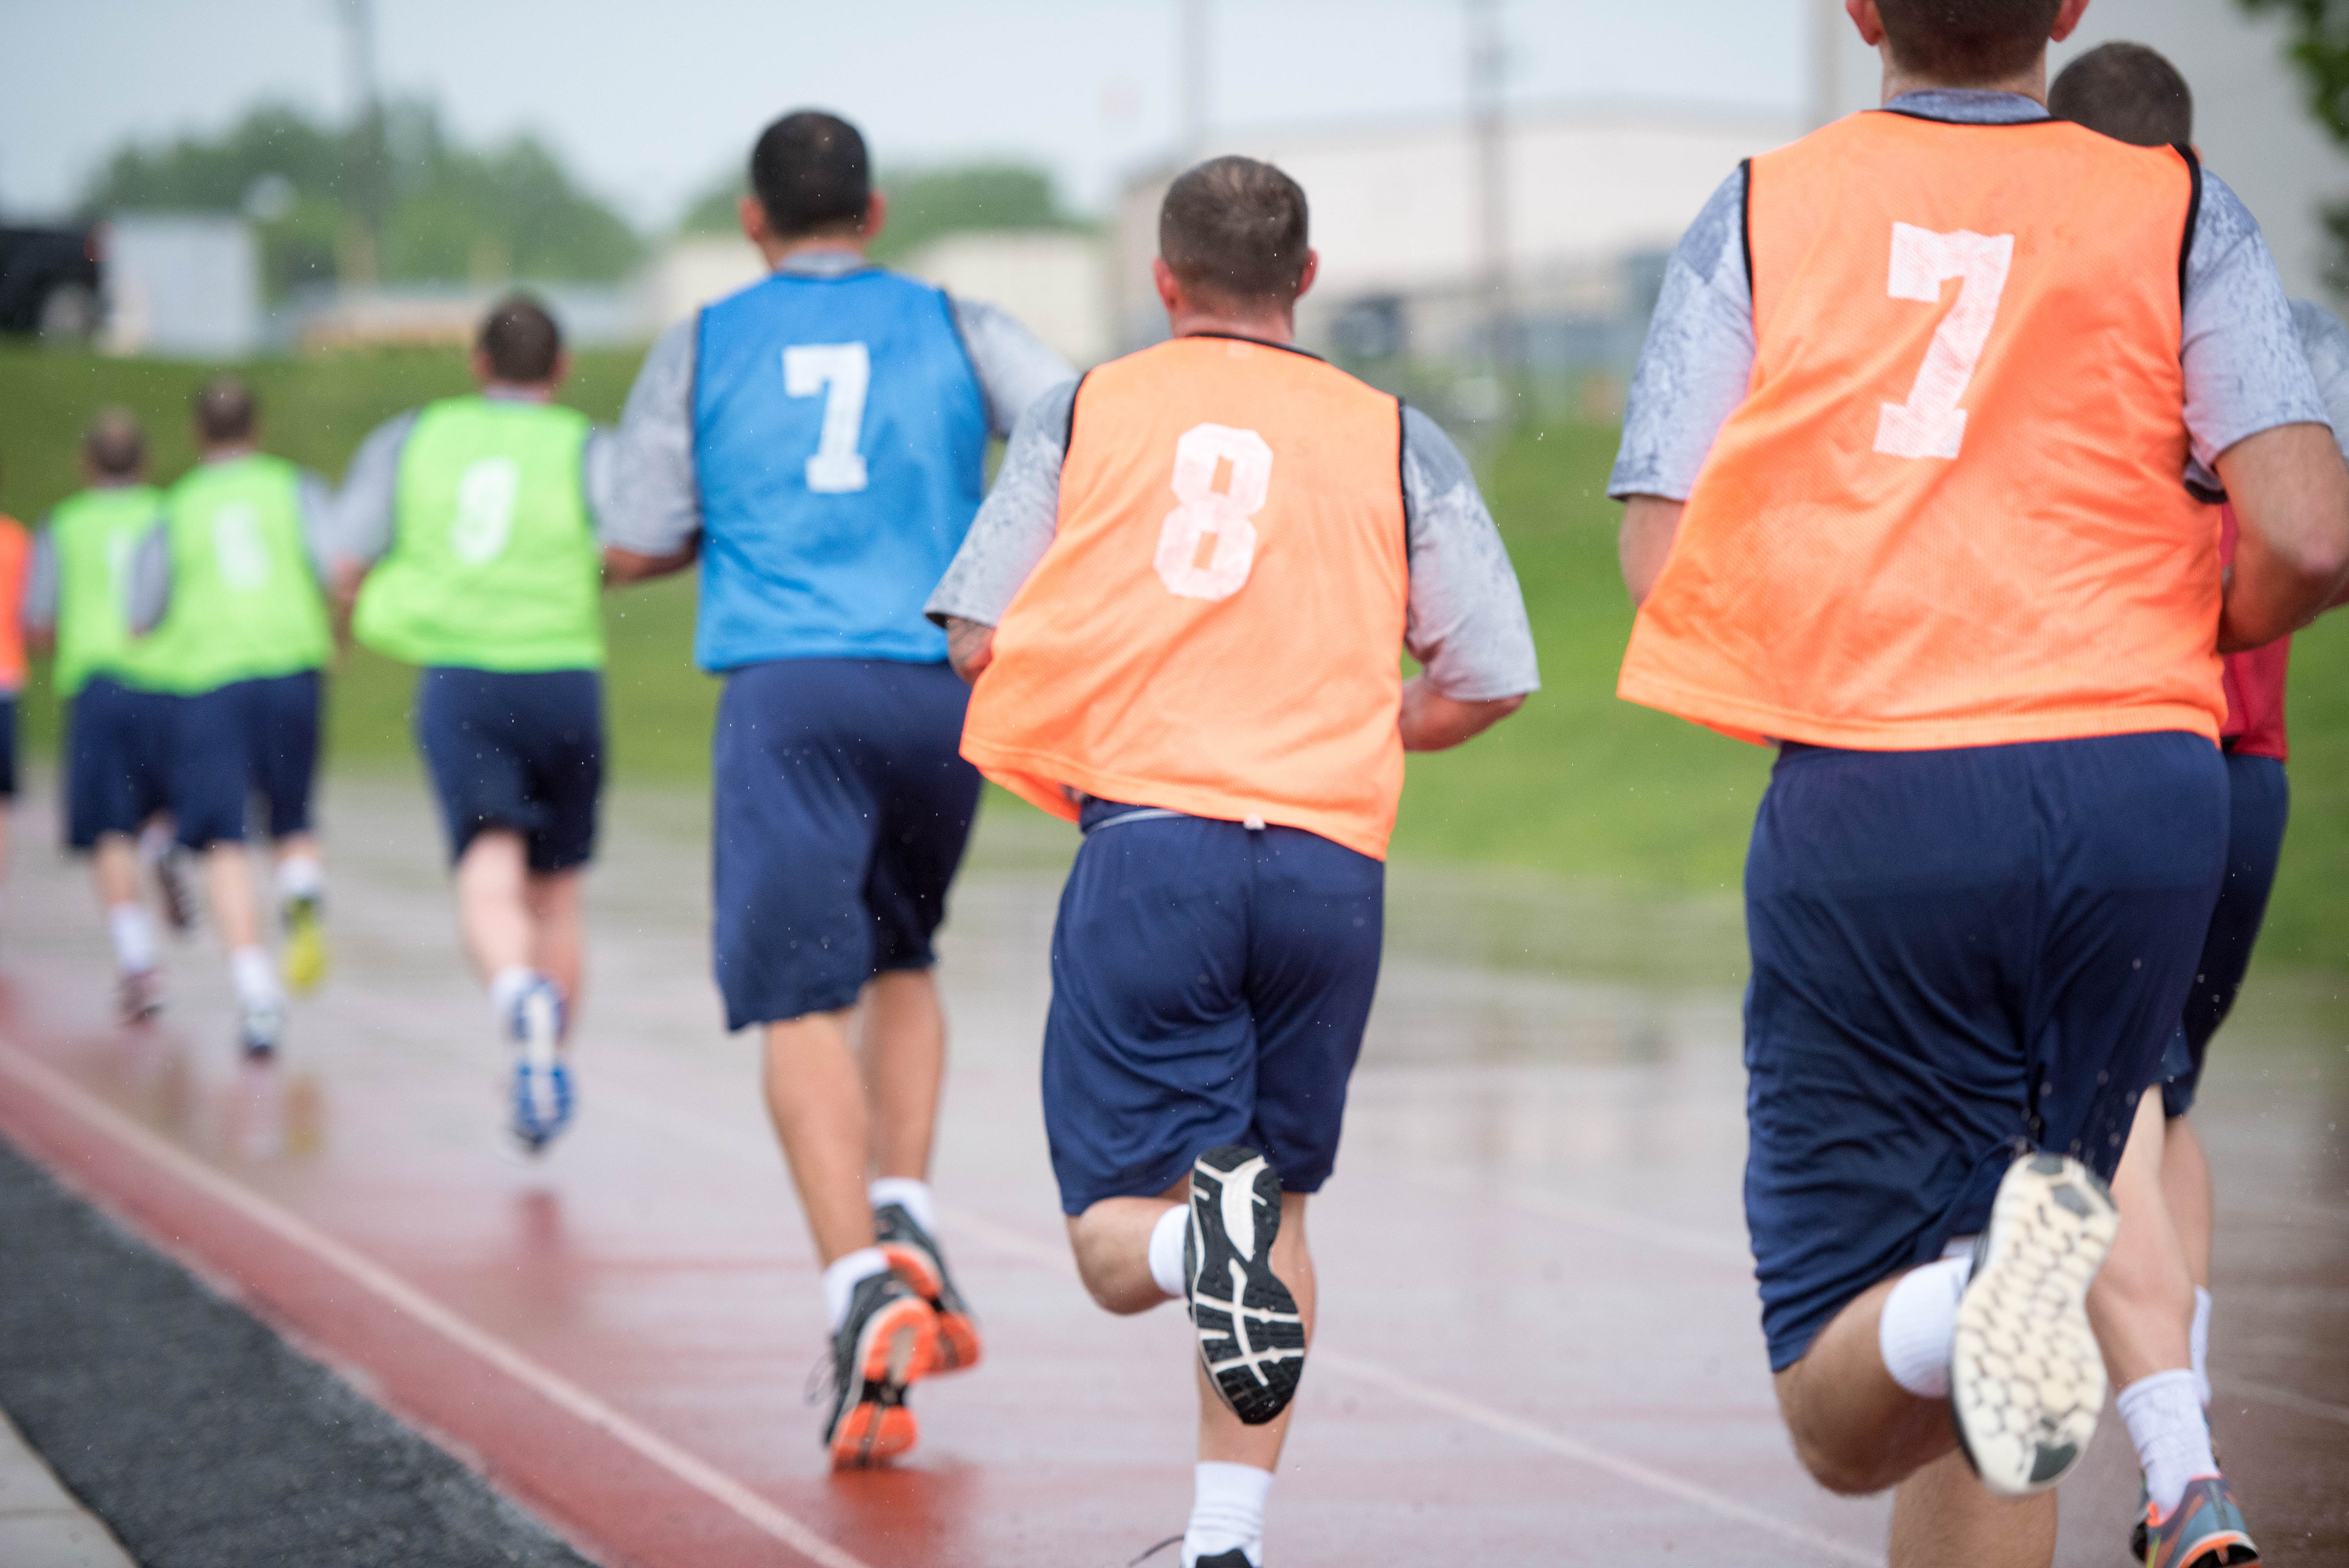 New agent trainees start their one-and-a-half-mile run in the rain as part of their physical fitness test (PFT) at the FBI Academy in Quantico, Virginia.